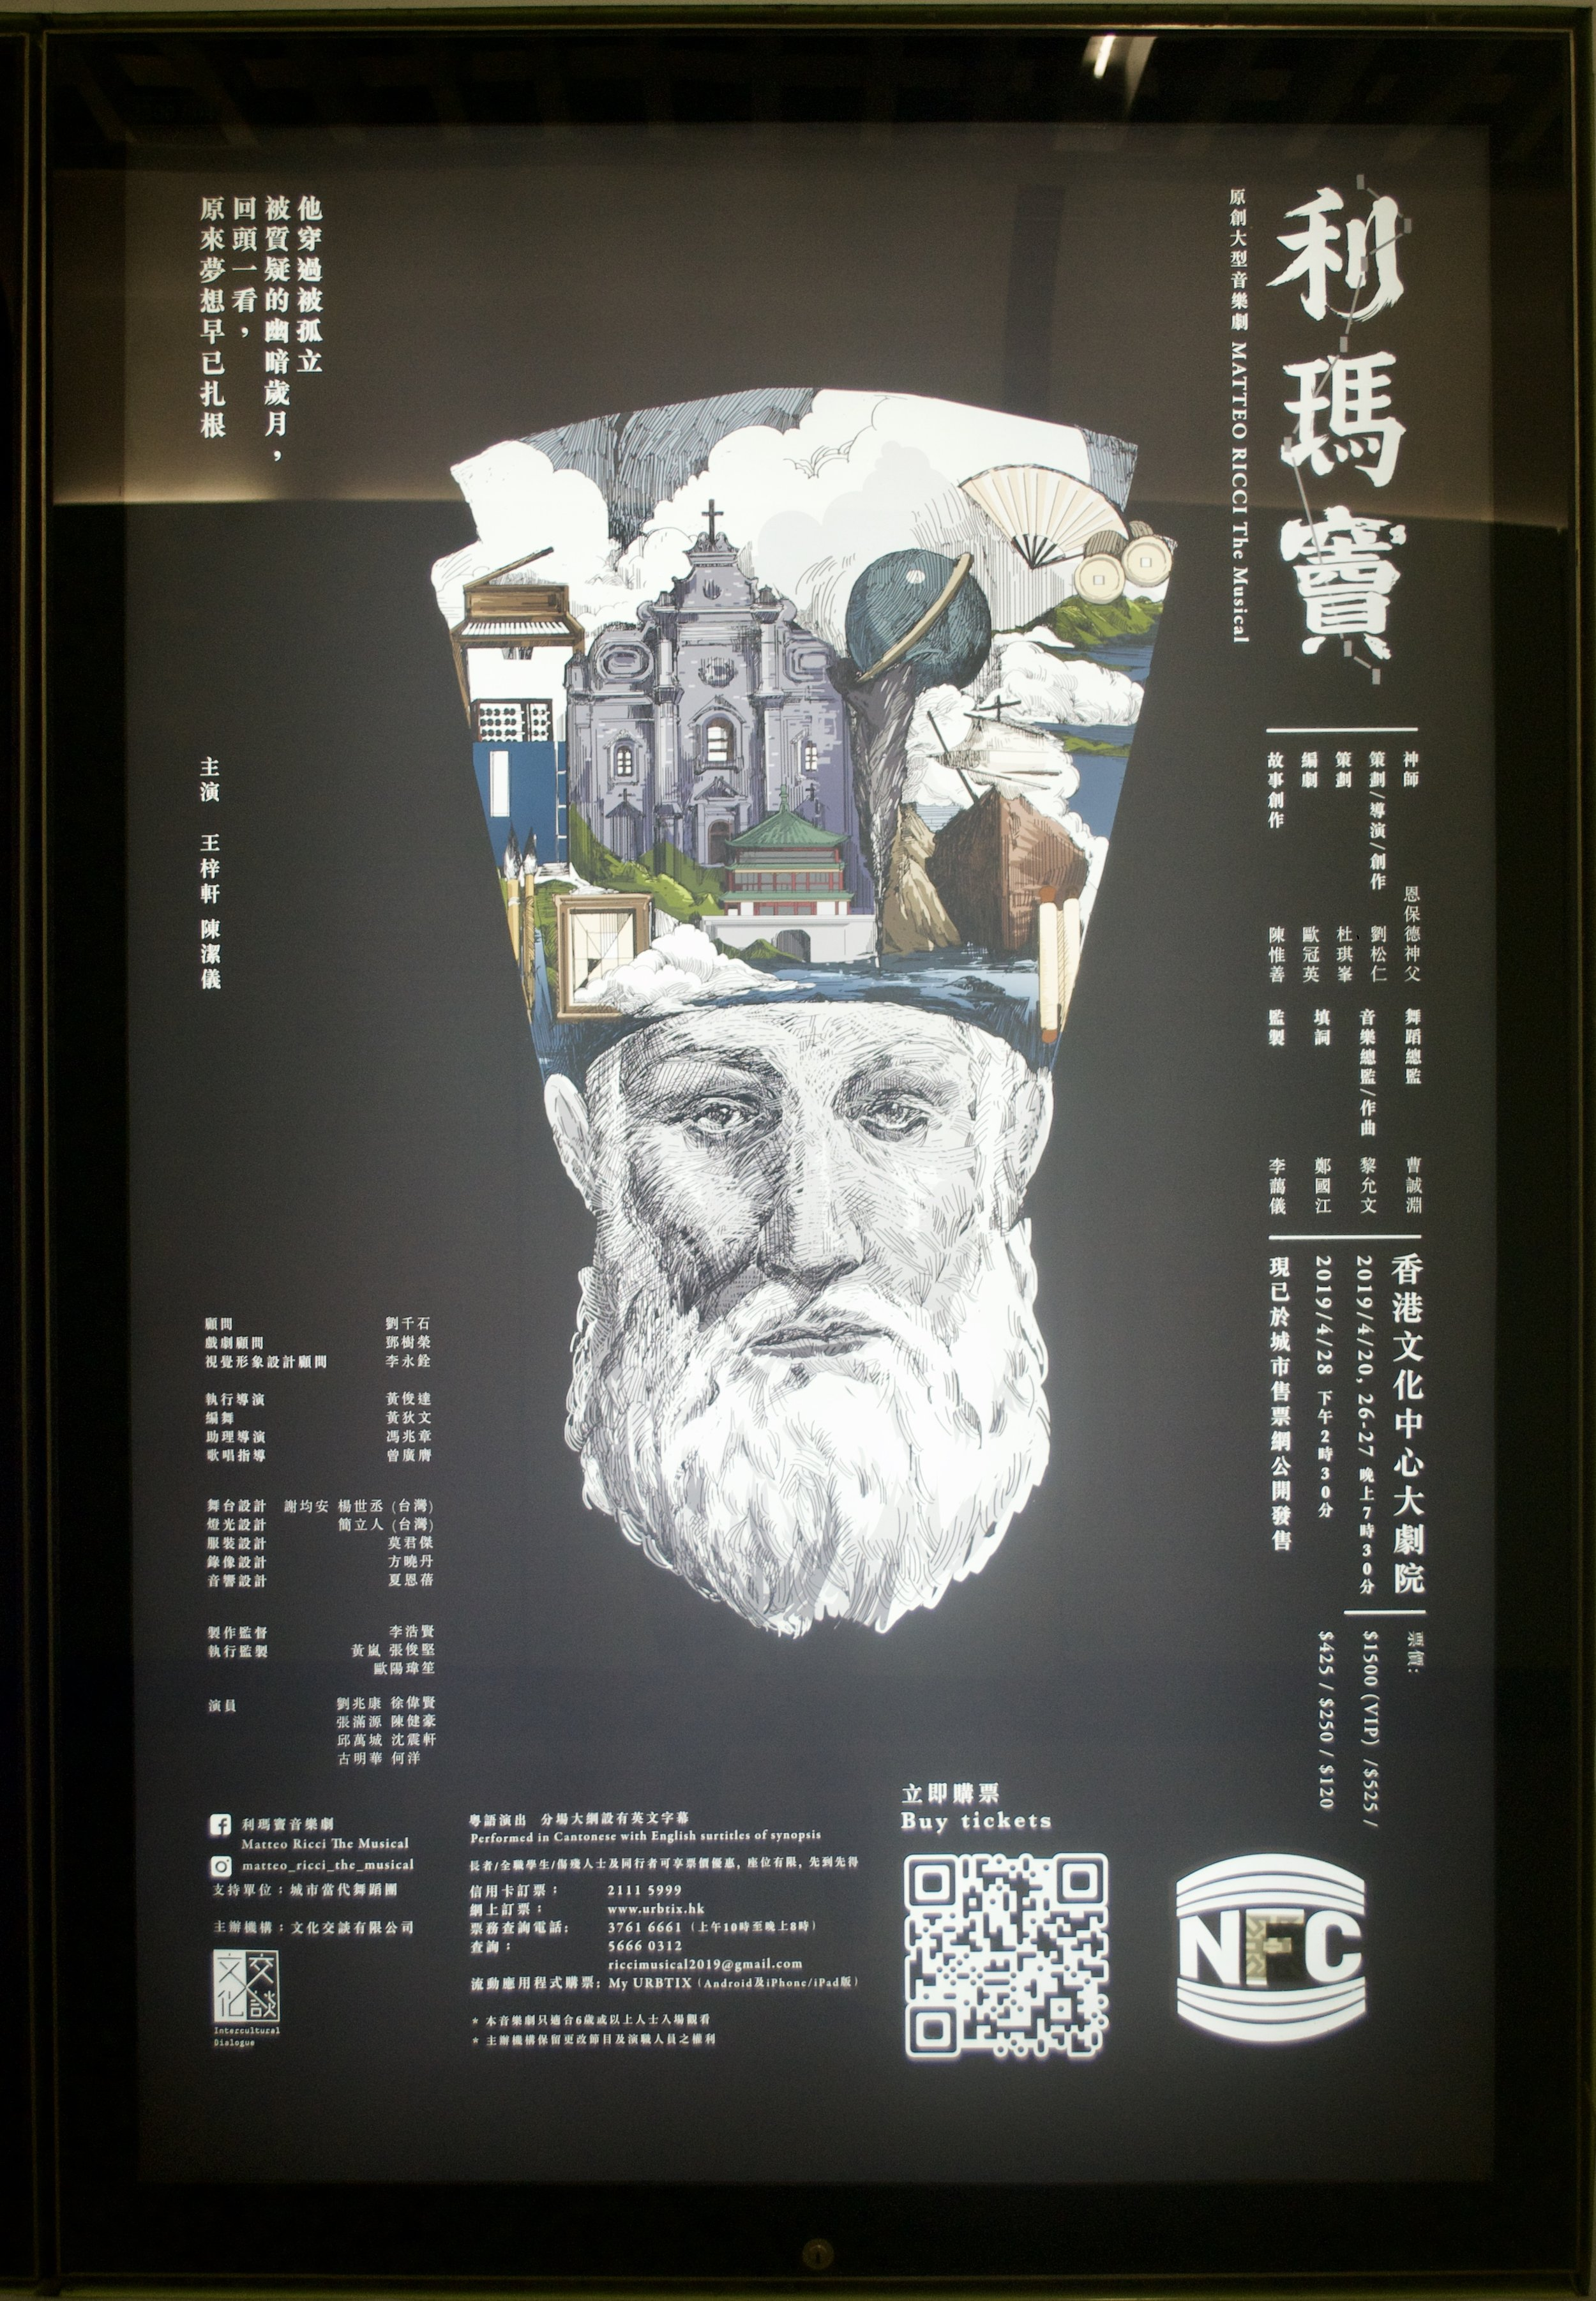 Commemorating the 400th anniversary of Father Matteo Ricci's death, a musical production depicting the life of Father Matteo Ricci was performed at the Hong Kong Cultural Centre.  [Nicholas Zhang Archives]